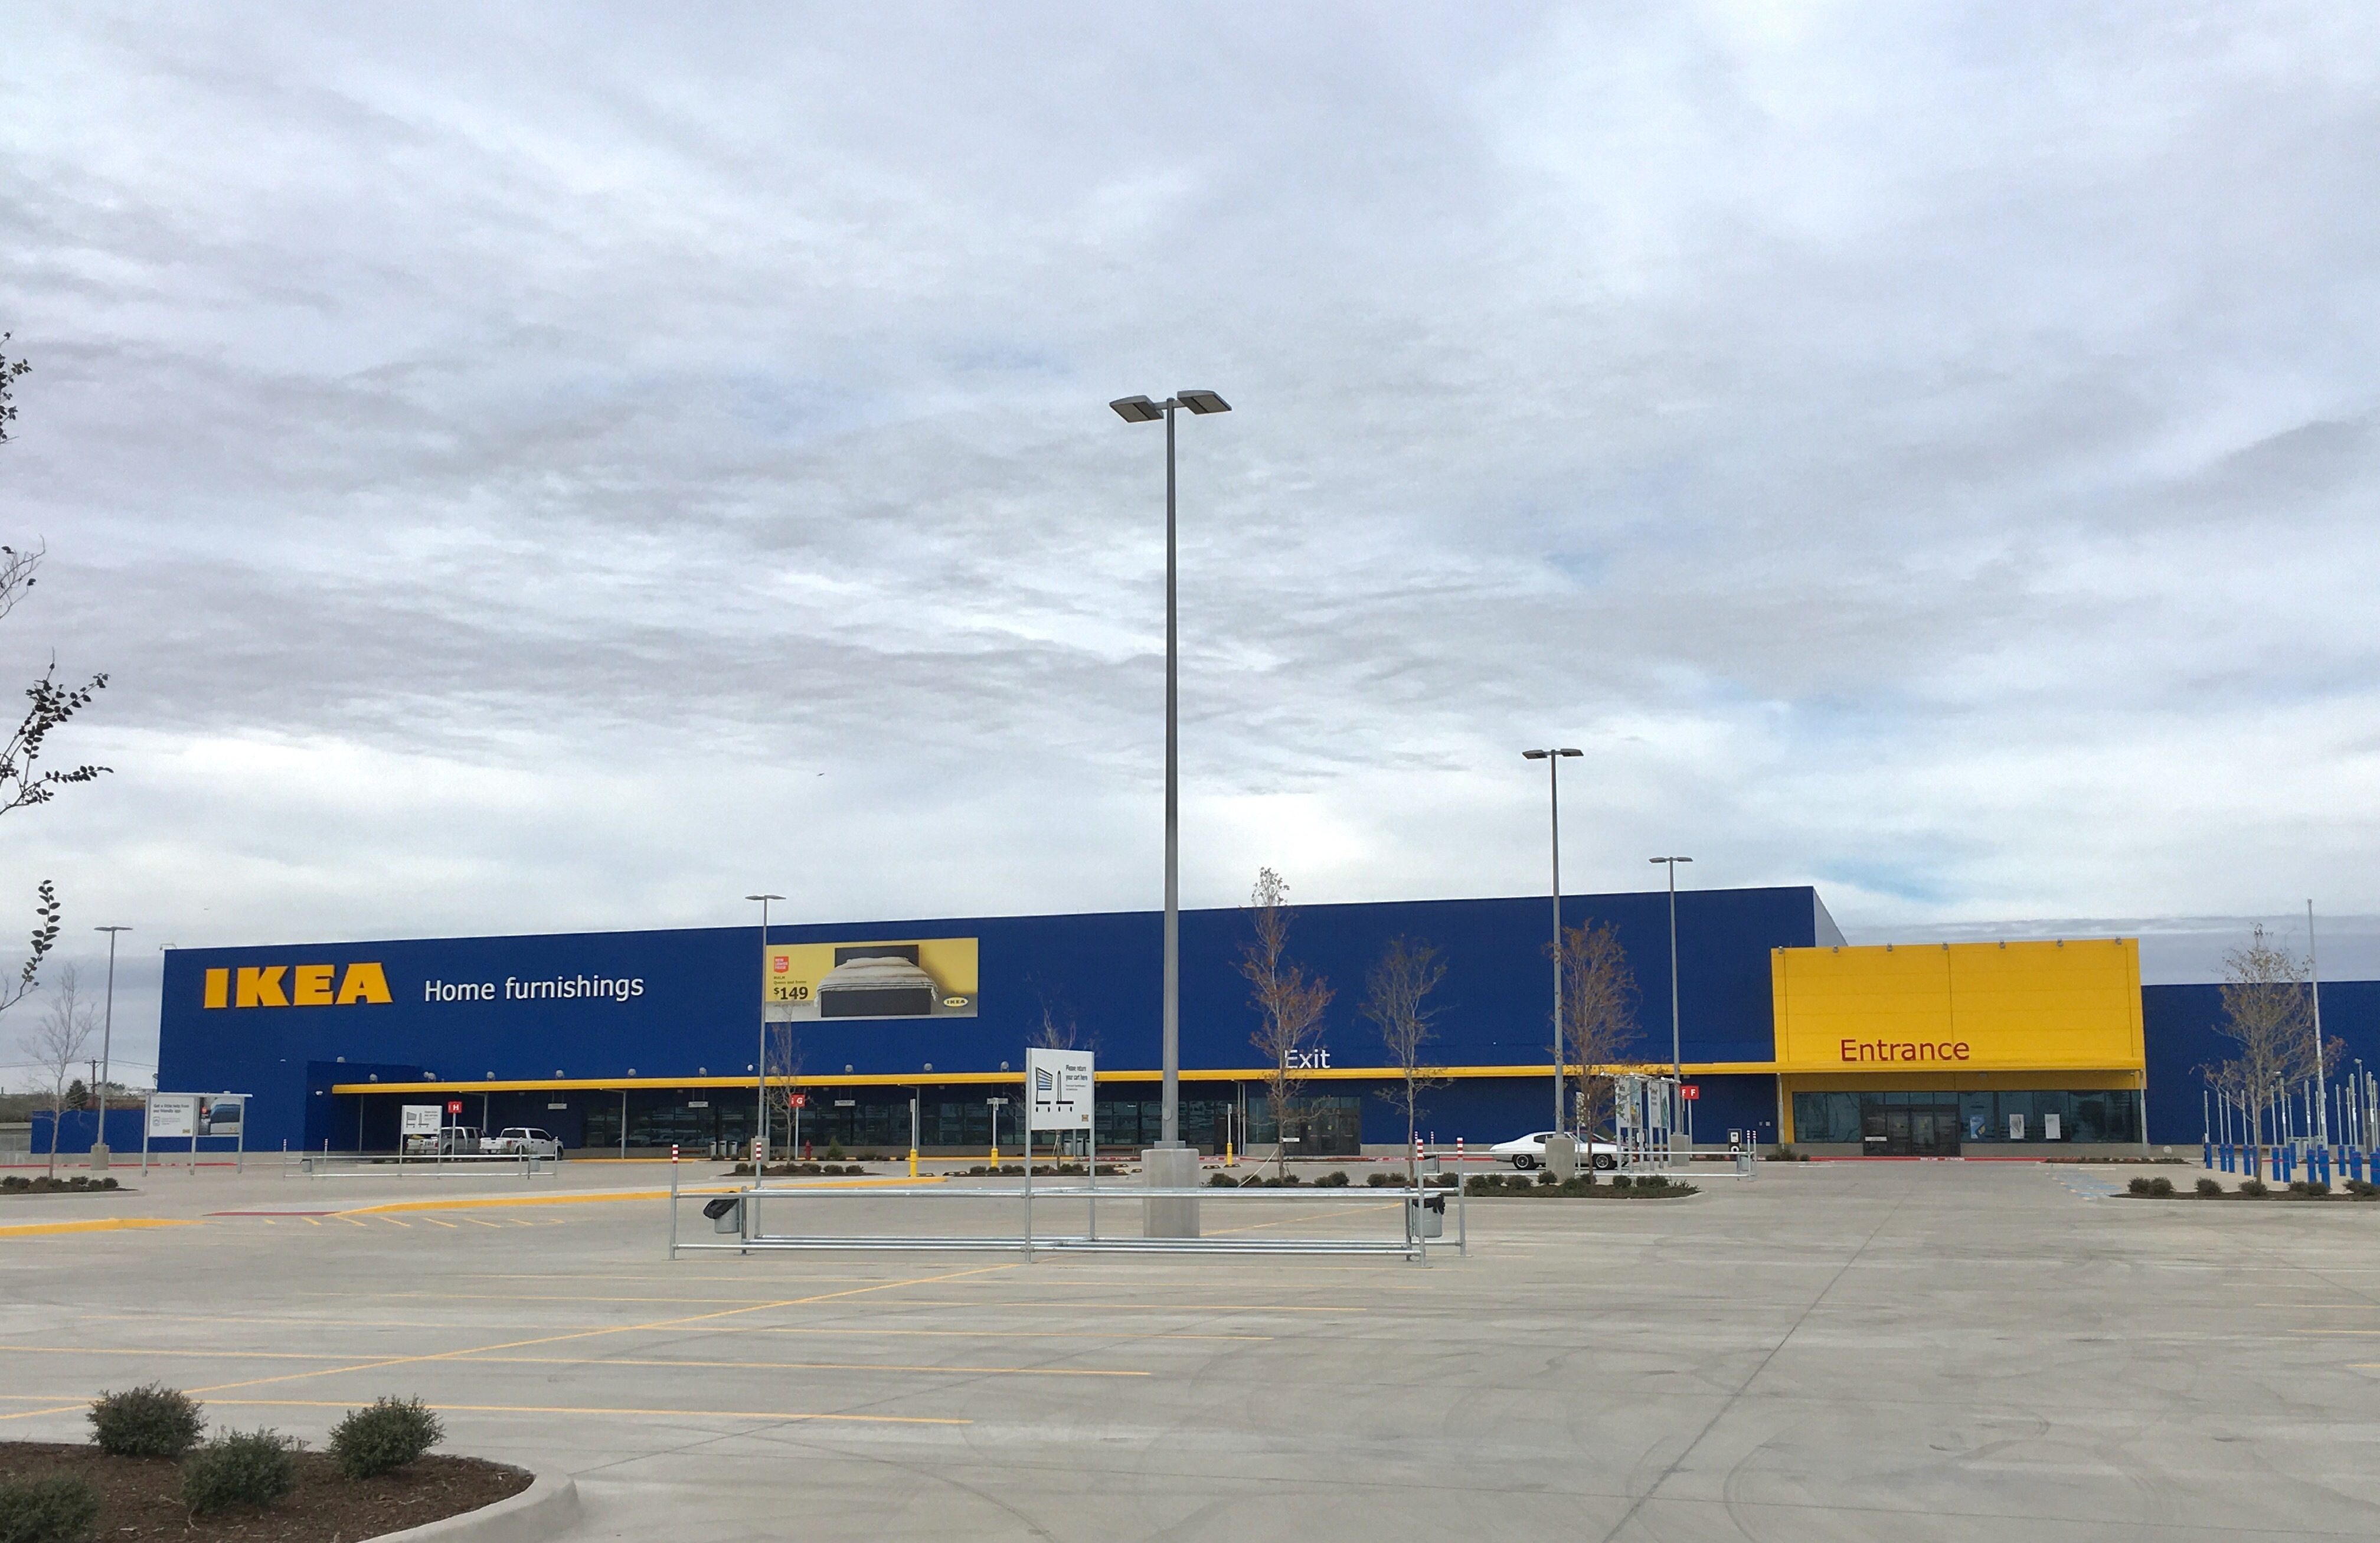 Ikea Grand Prairie To Welcome Pers On December 13 With Opening Festivities And Promotions Business Wire